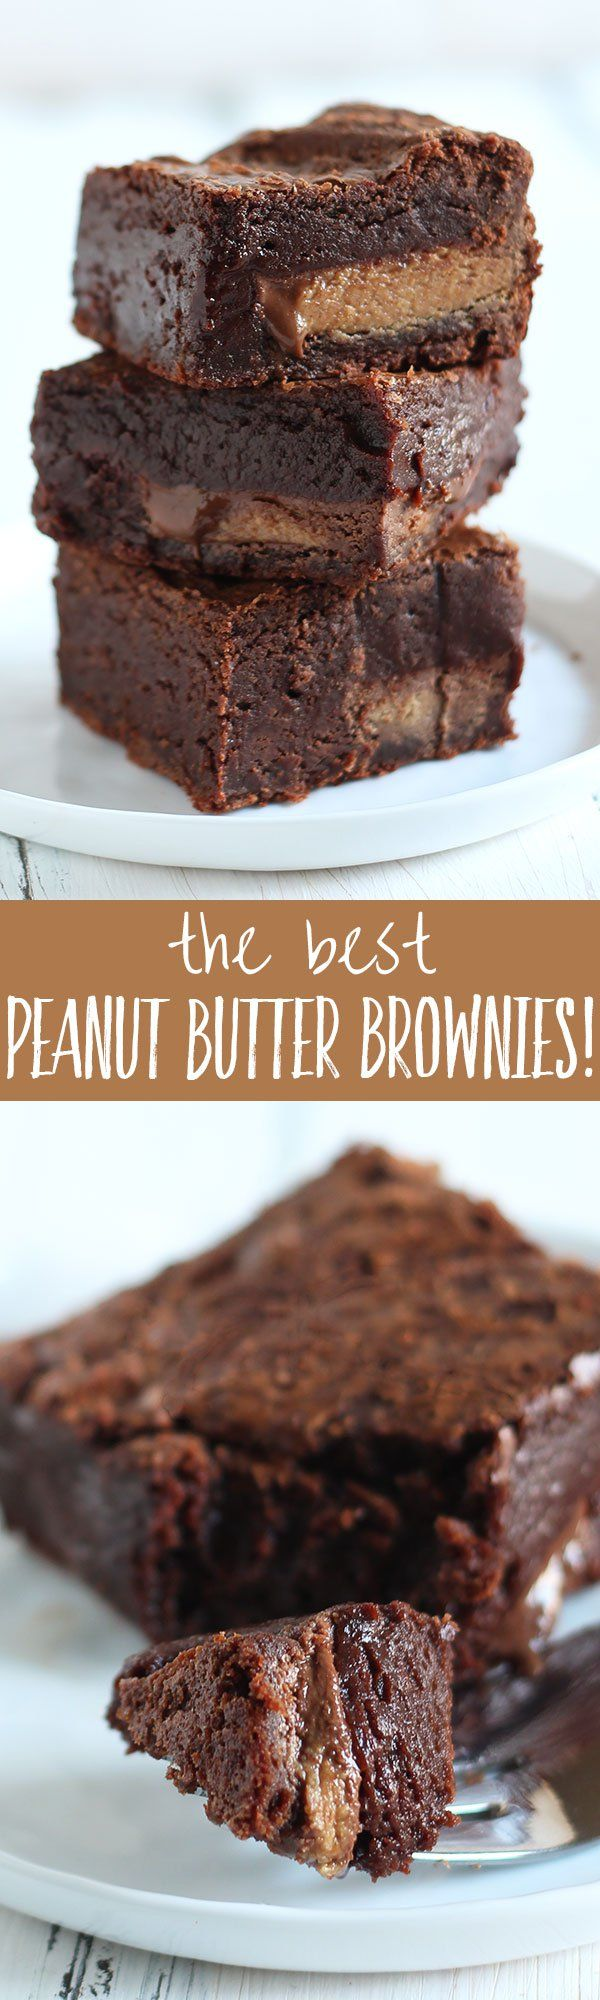 The Best Peanut Butter Brownies EVER!!! Obsessed! from handletheheat.com